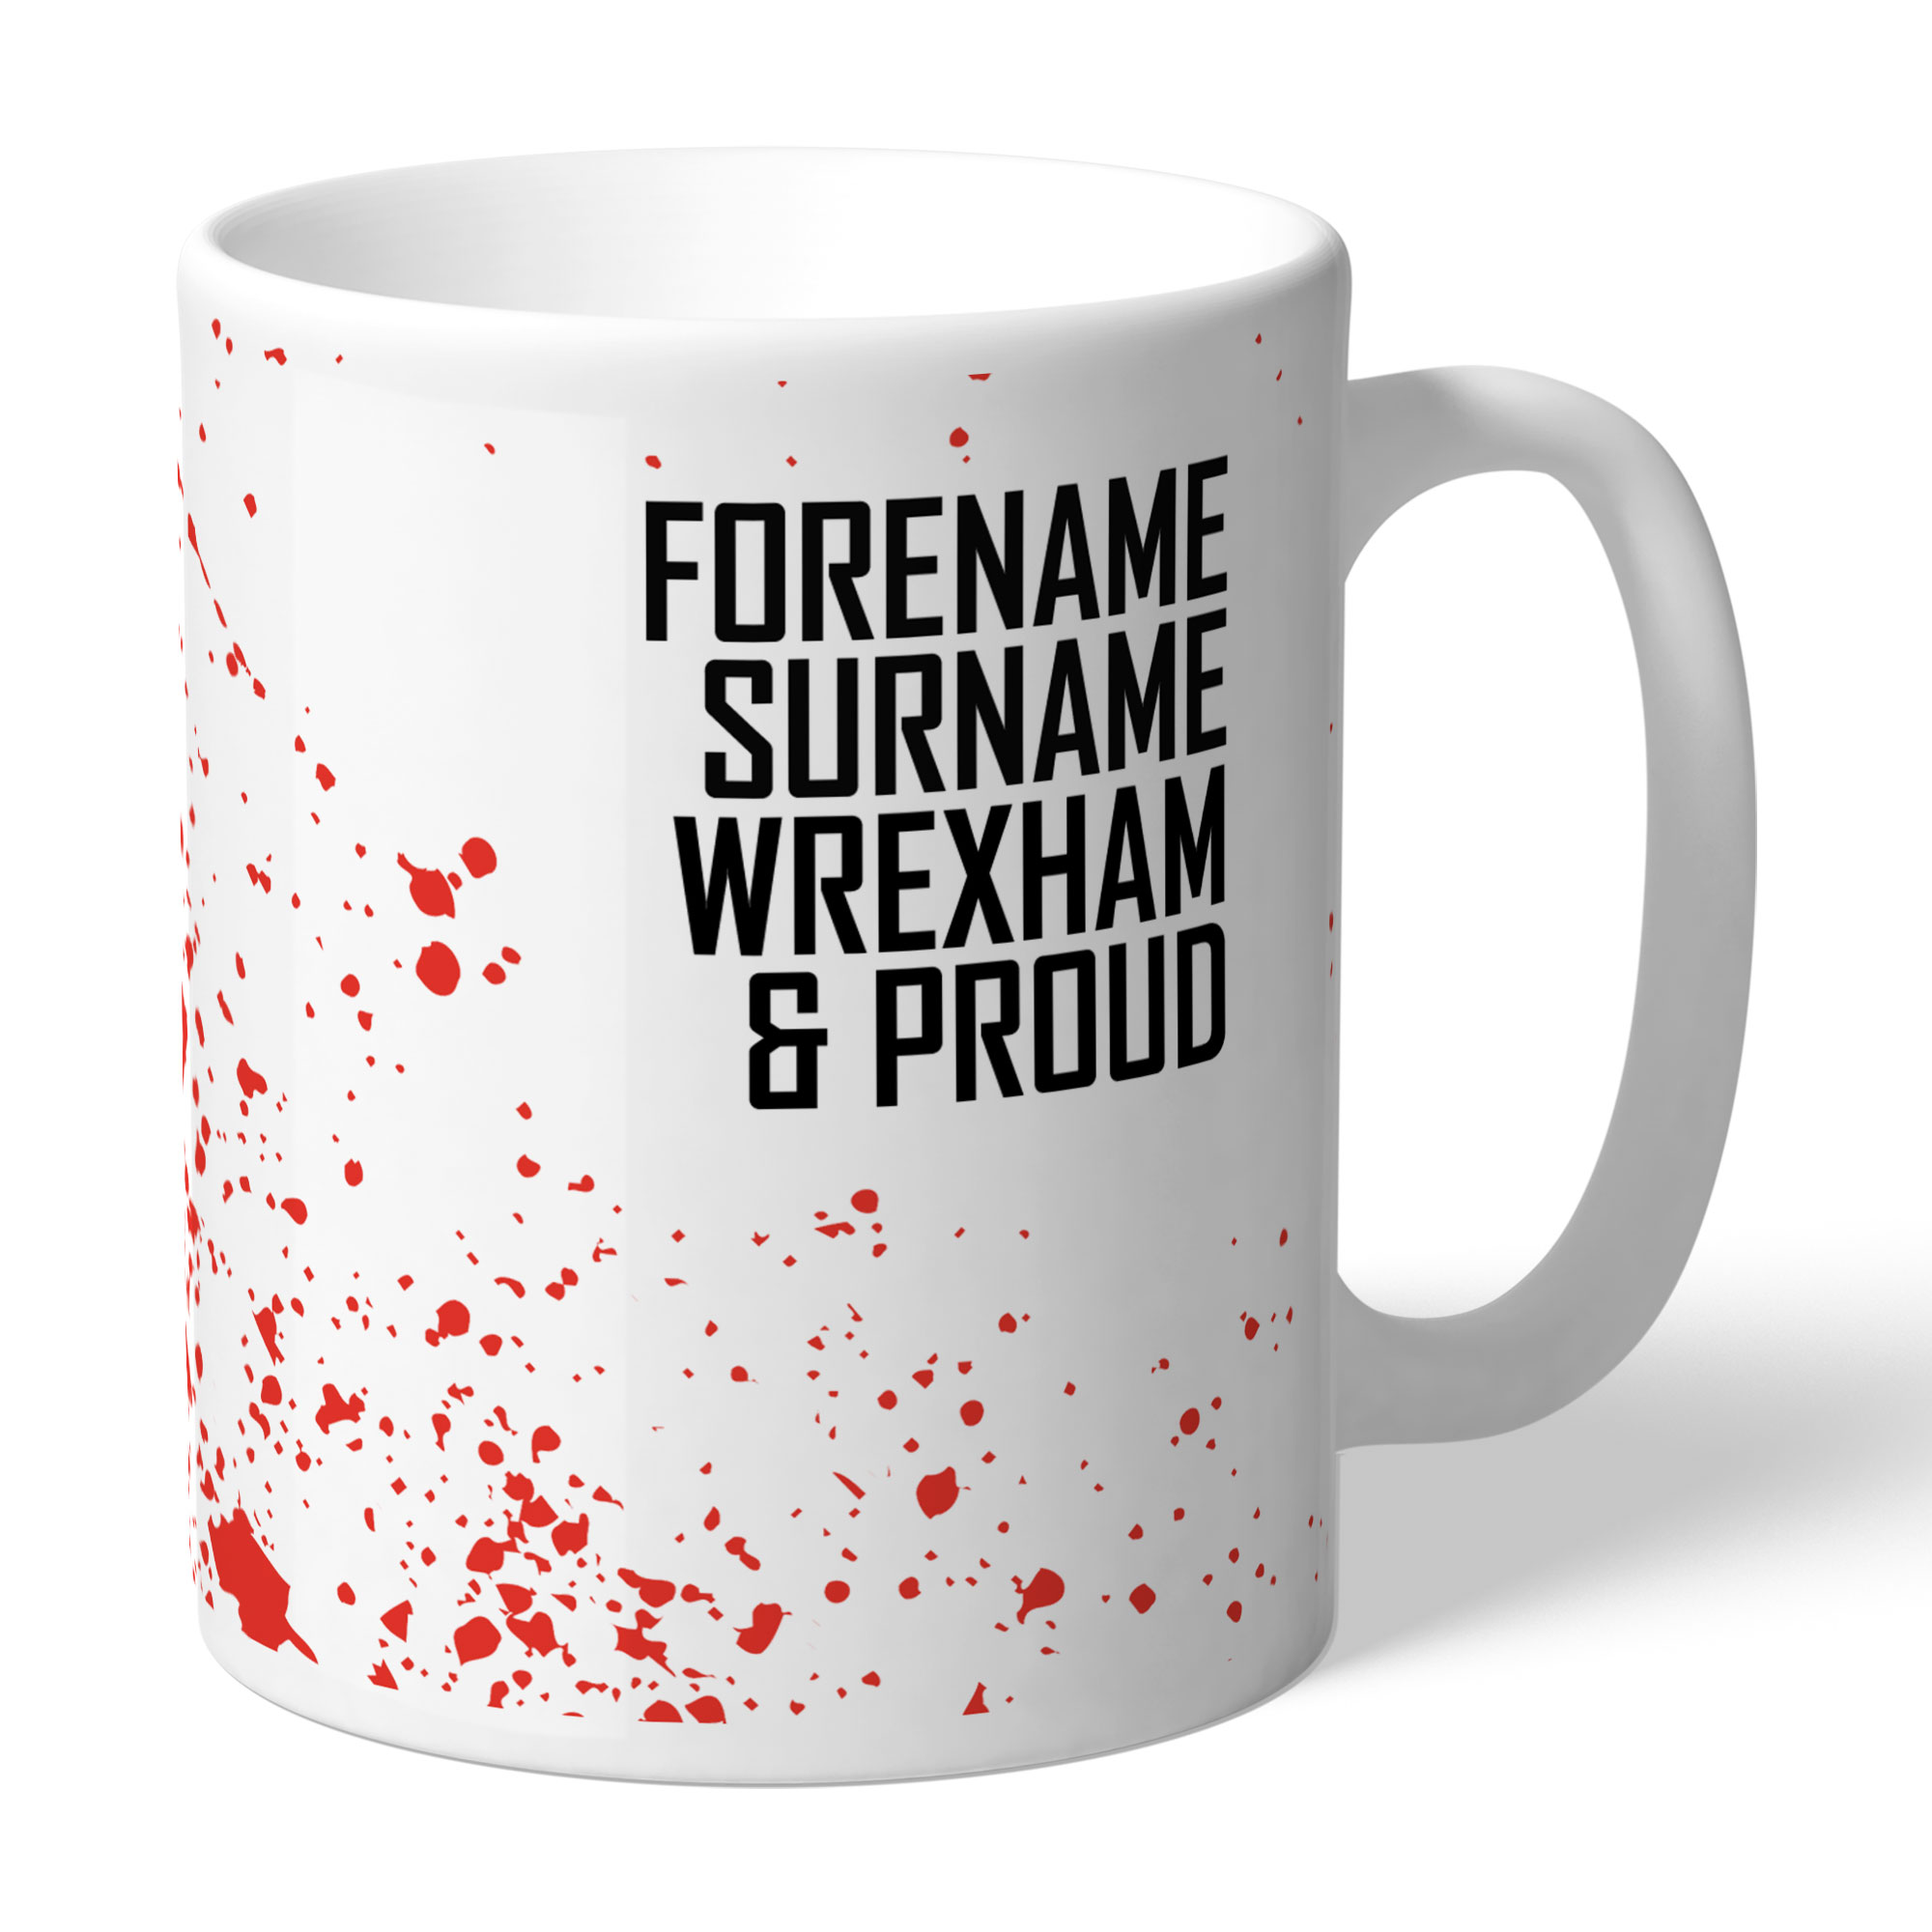 Wrexham AFC Proud Mug